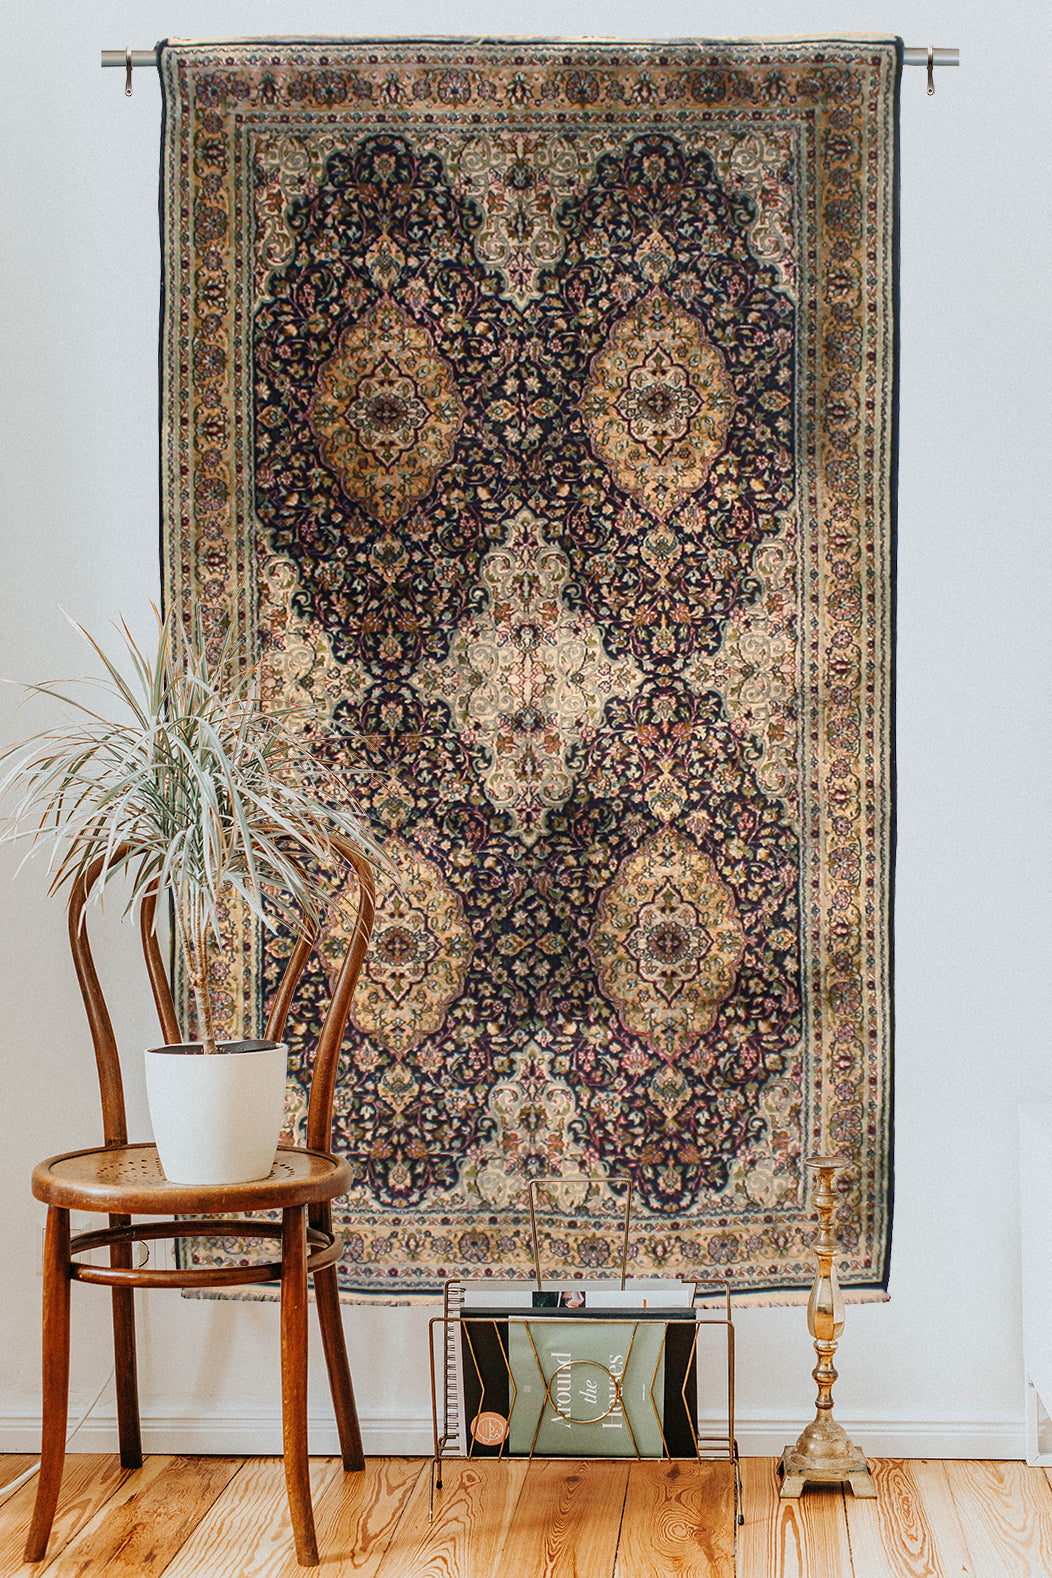 How to hang an Oriental rug on the wall